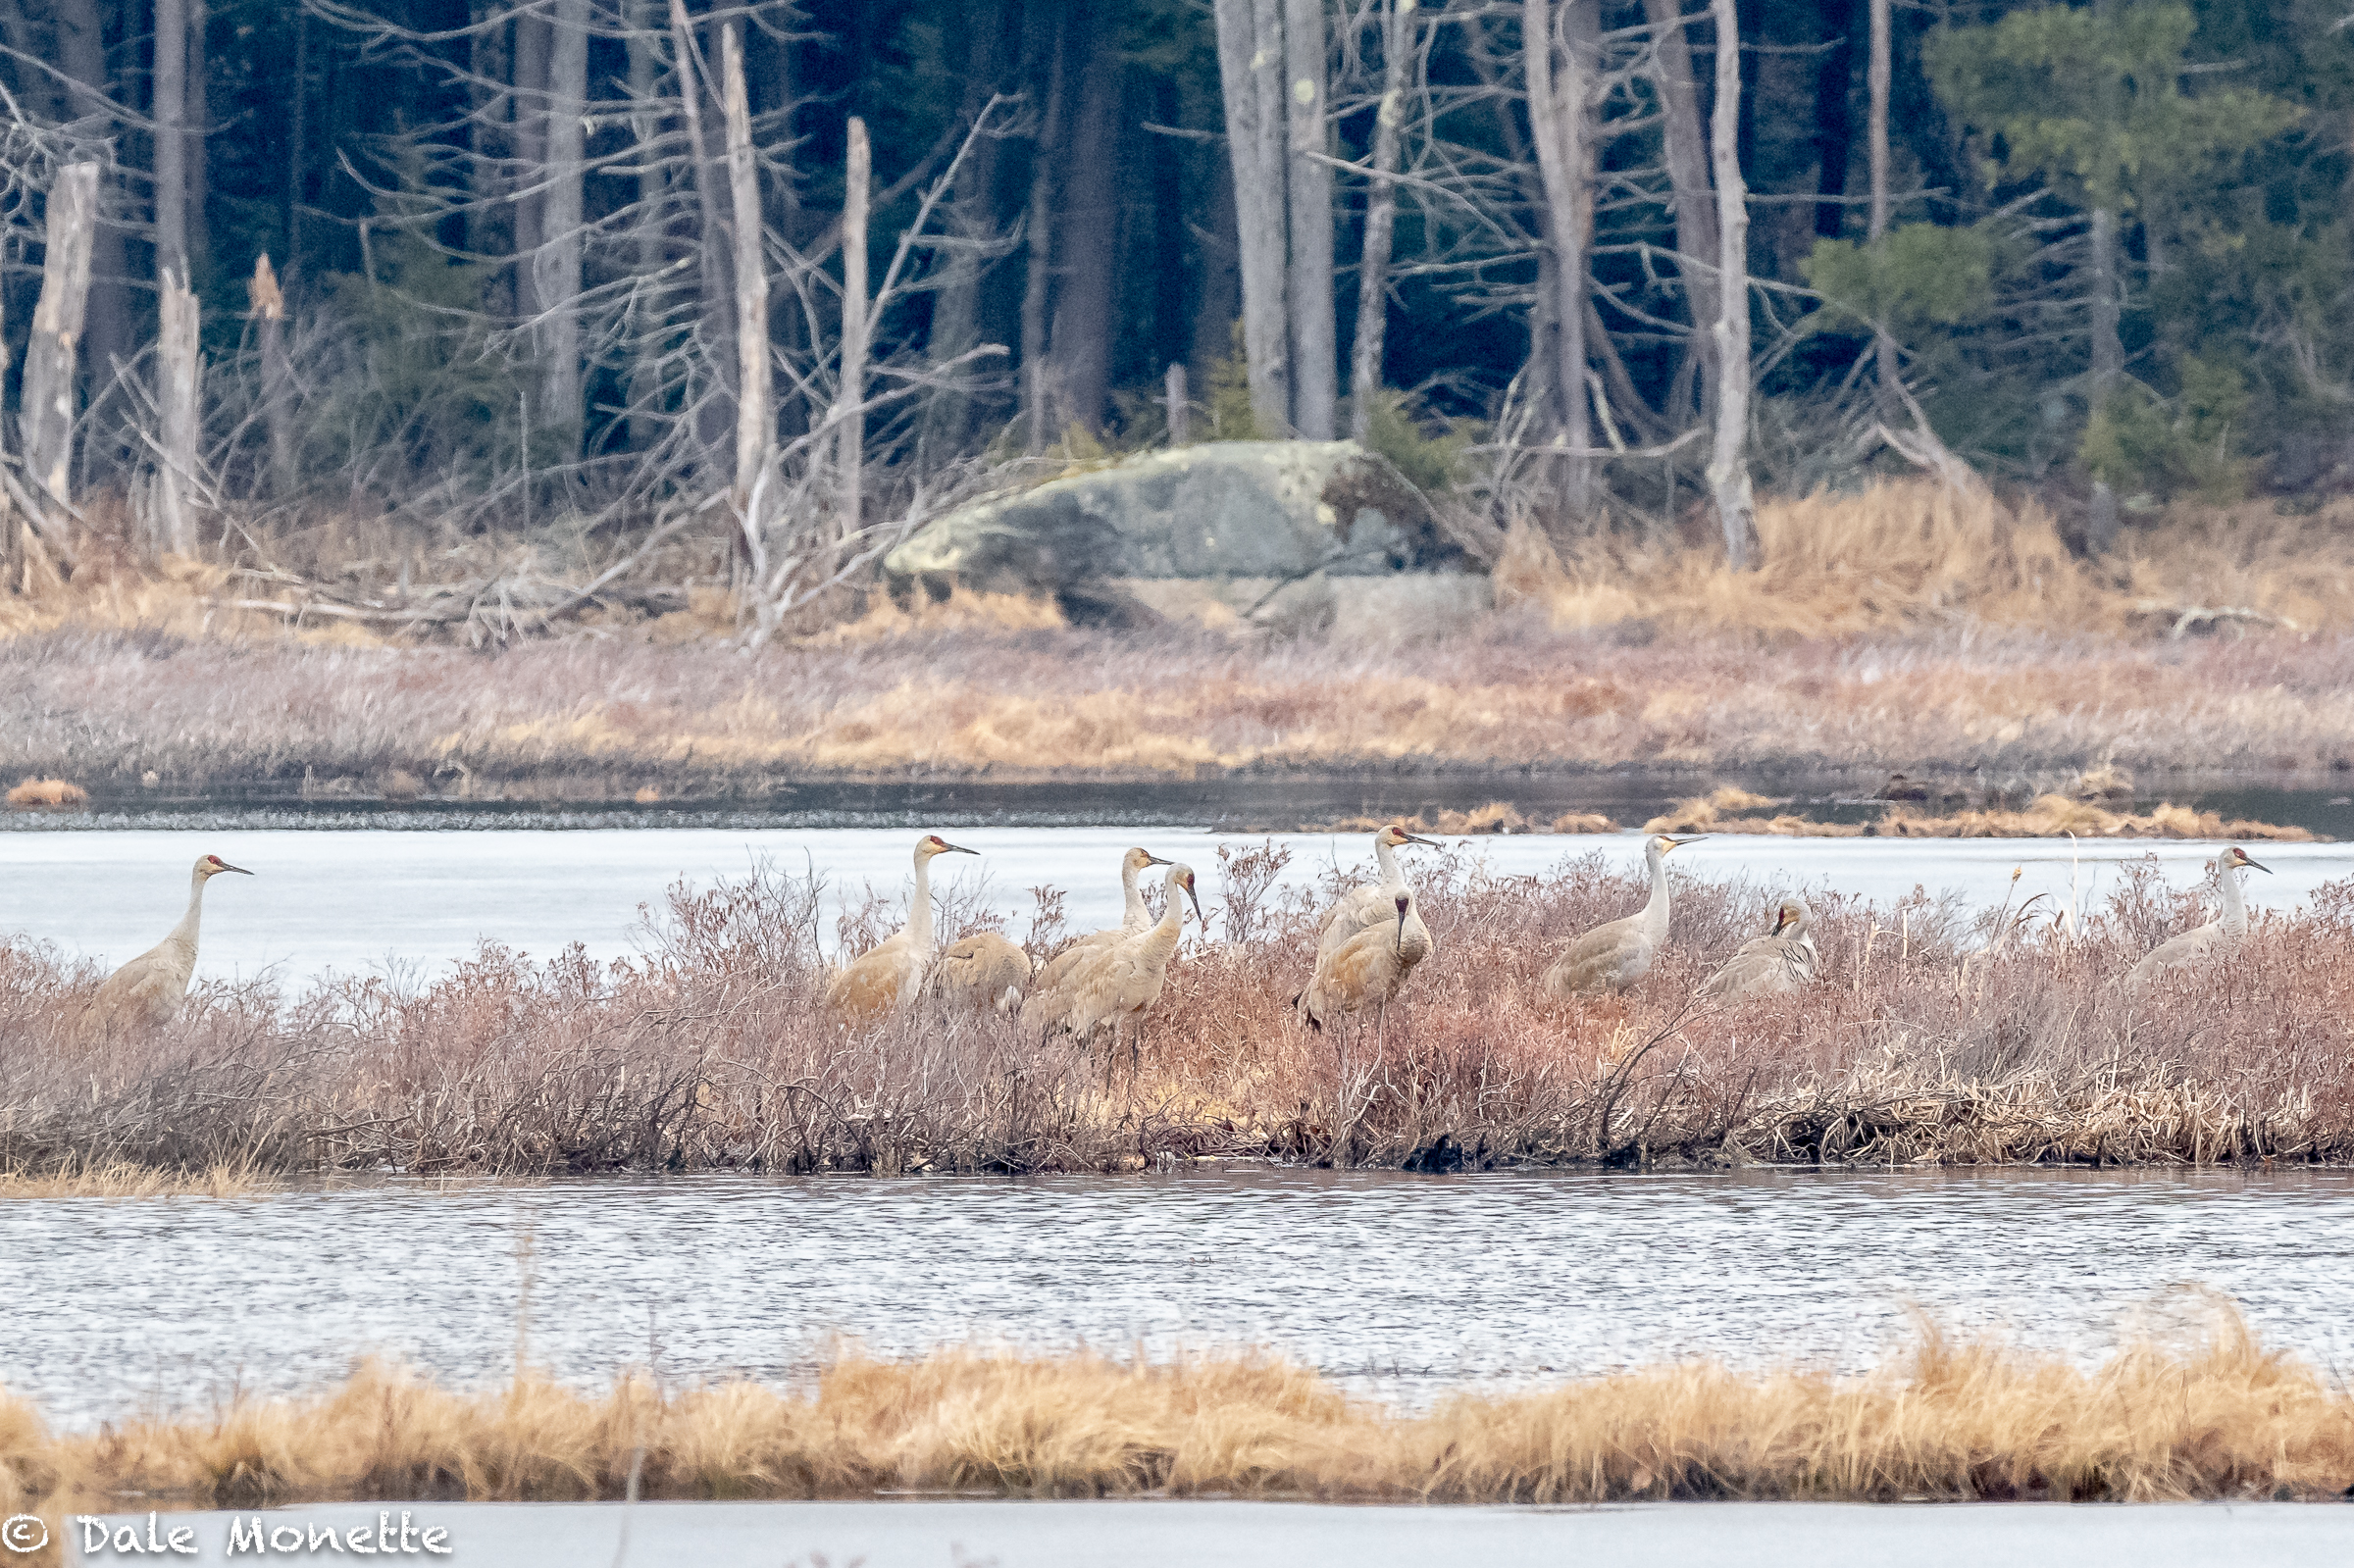 I was given a tip about these 10 rare Sandhill Cranes today.  They were in a large swamp/bog in Royalston MA. A pair of bald eagles also live in this large swamp.  They left at about 1:30 and headed dead north on their way migrating.  A great sight.